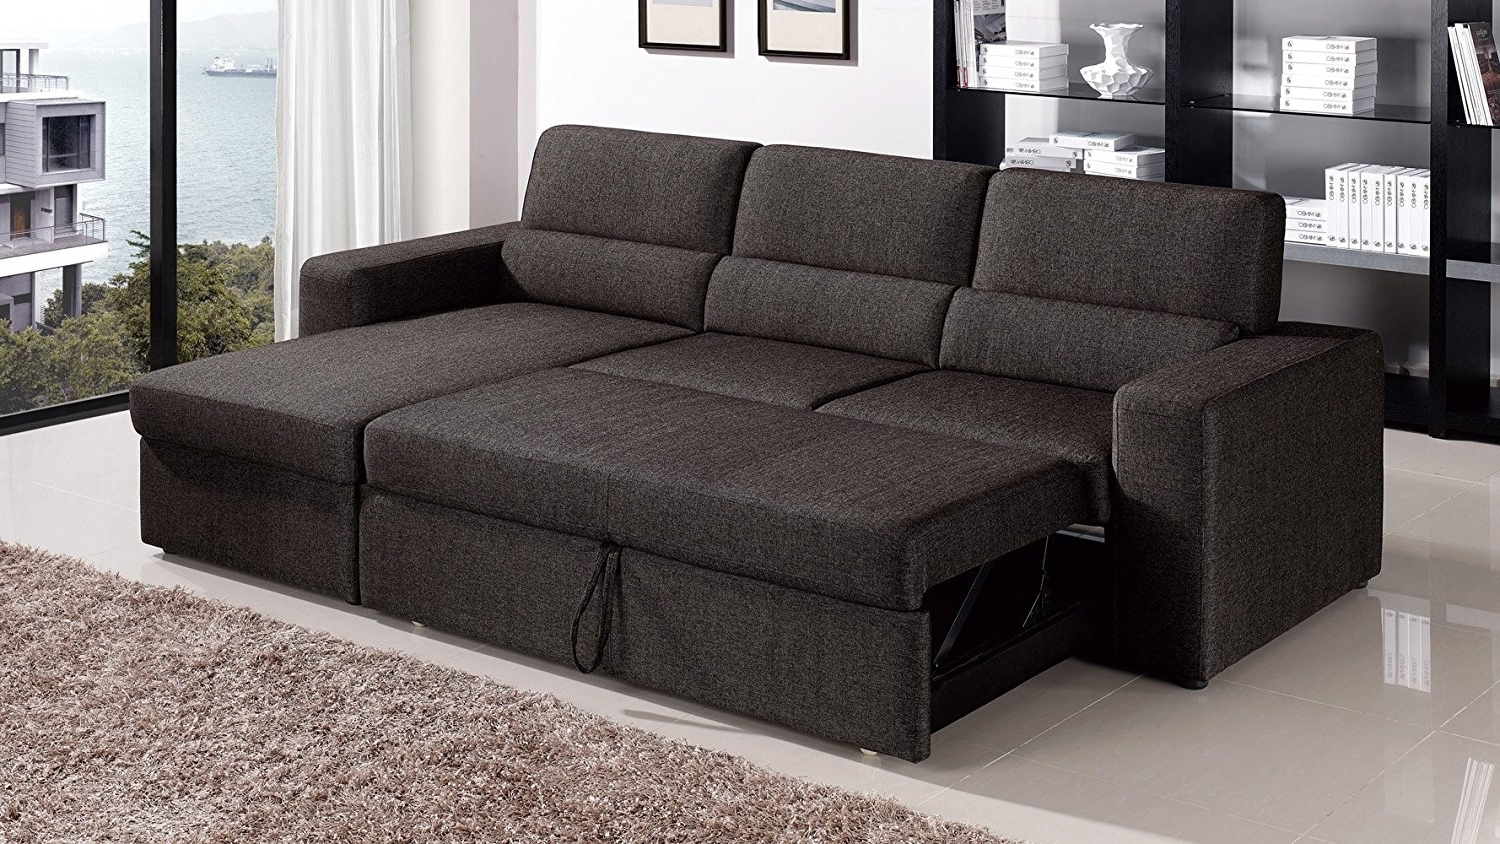 Most Recent Amazon: Black/brown Clubber Sleeper Sectional Sofa – Right Throughout Sectional Sleeper Sofas With Chaise (View 7 of 15)